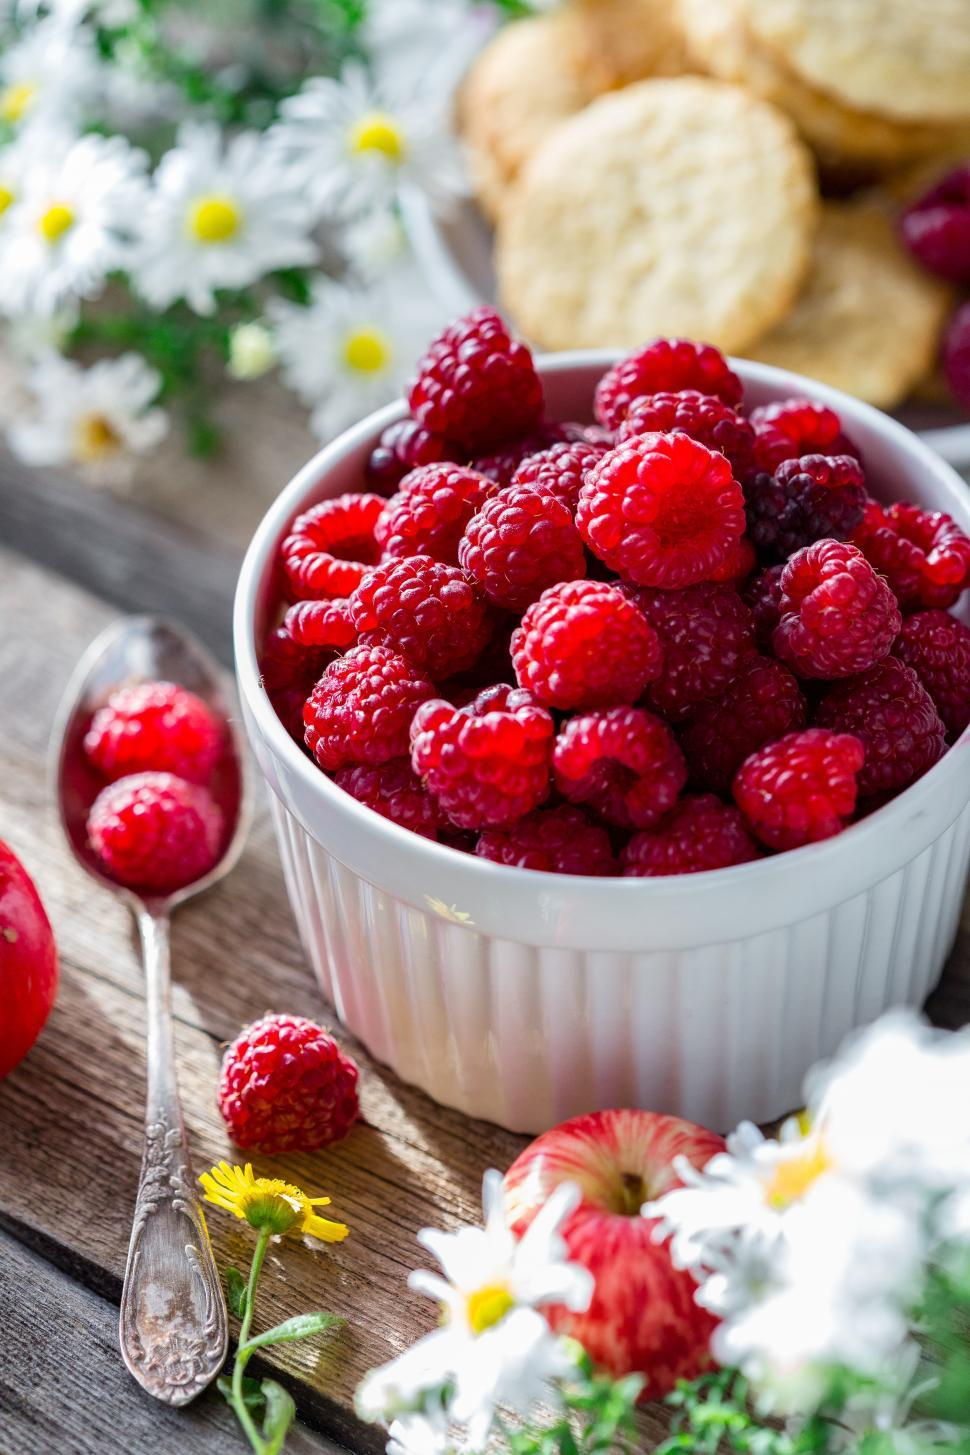 Download Free Stock HD Photo of Close up of a bowl of fresh raspberries Online